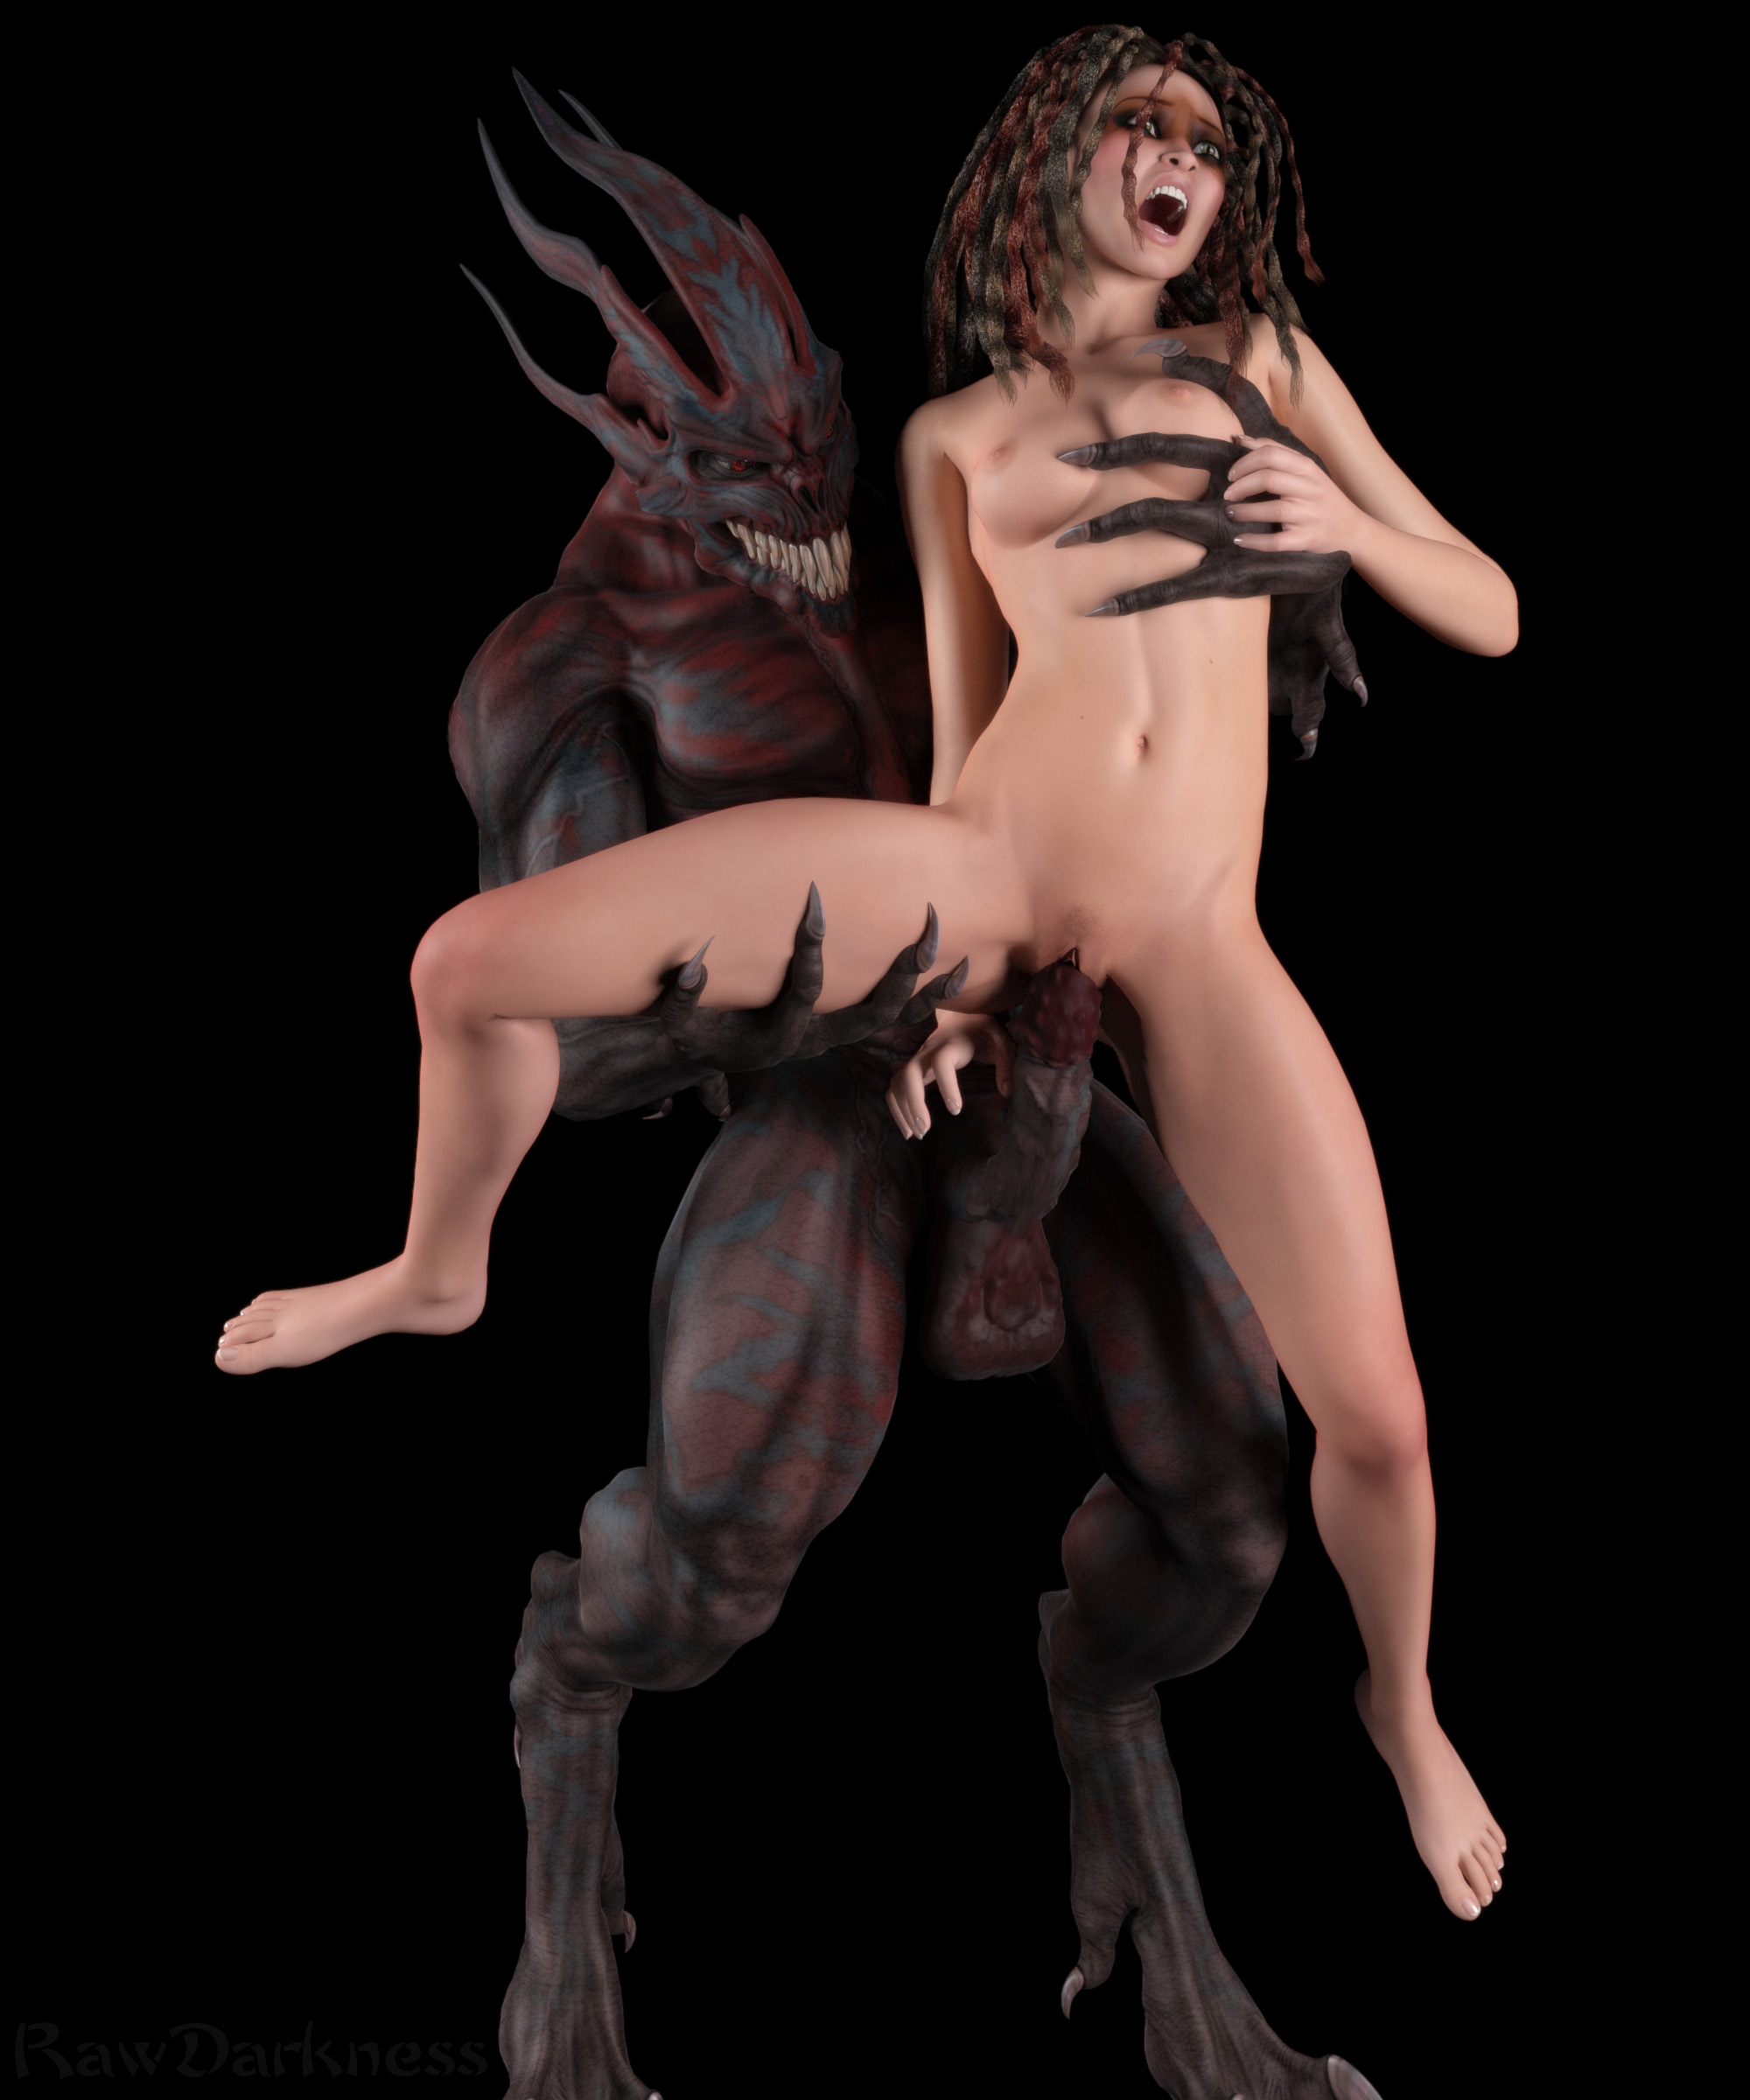 Free 3d male monster masterbating pictures xxx galleries